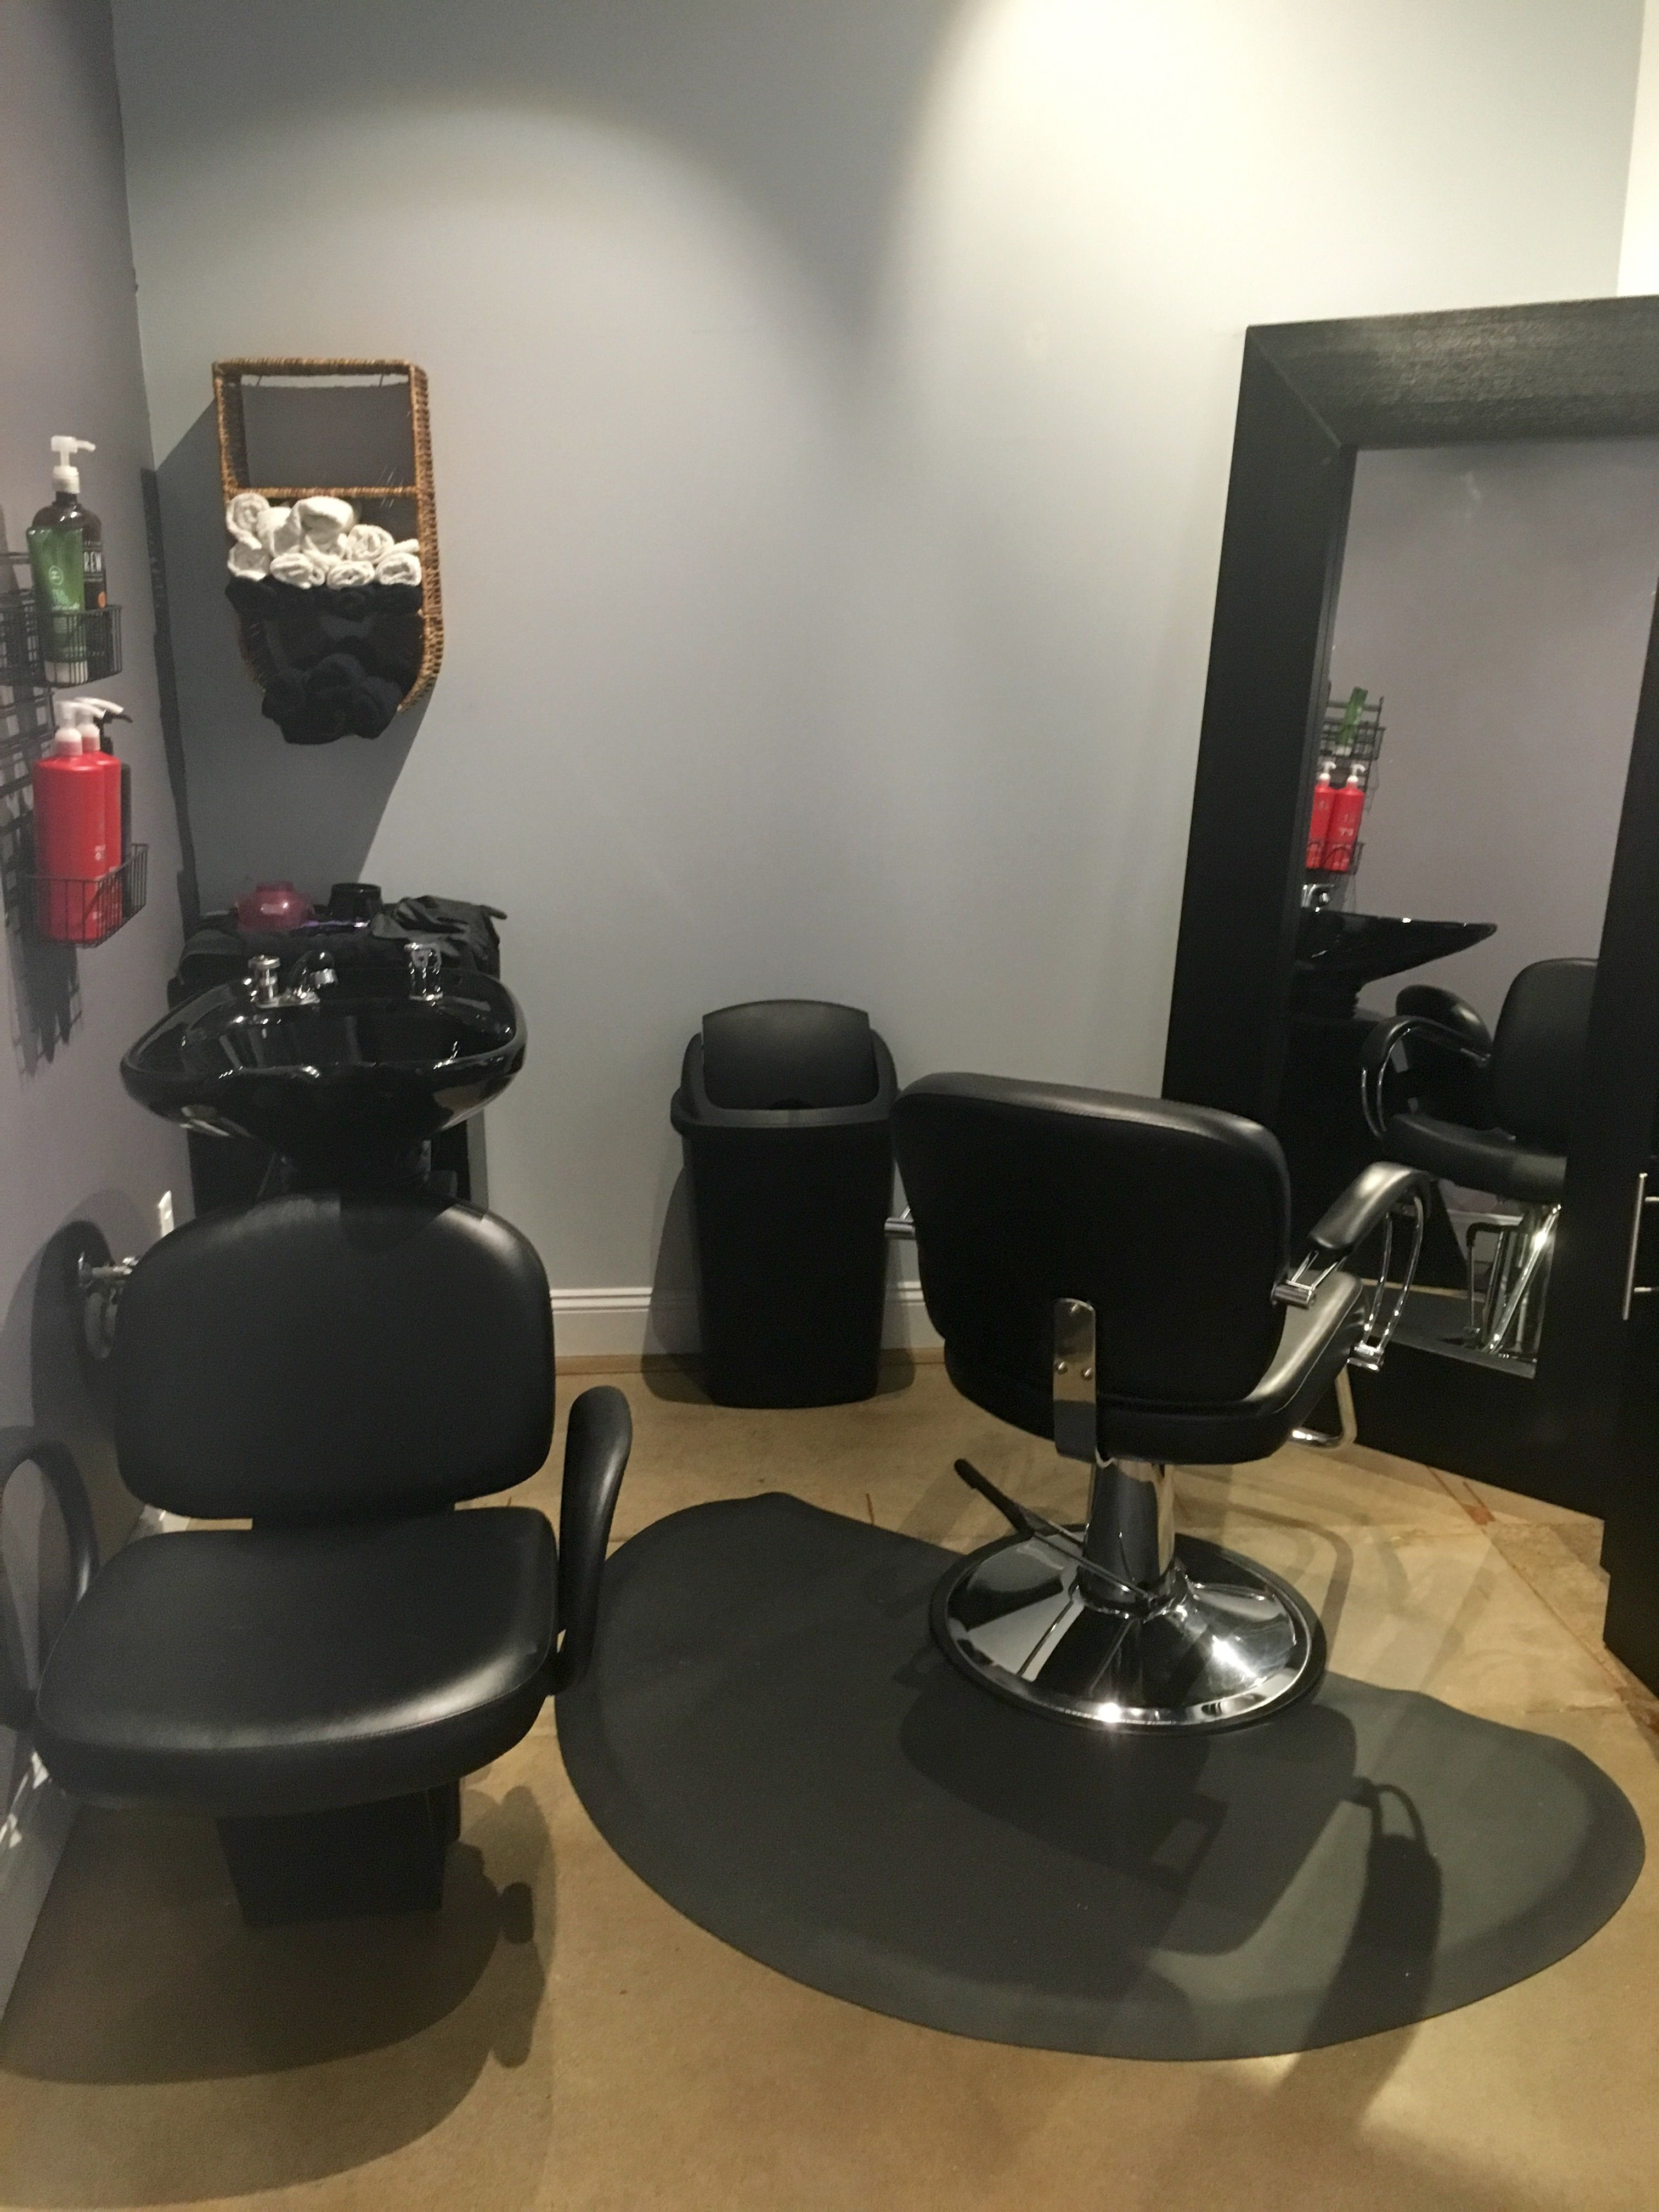 Suite 131 Erika S Hair Studio Decorated With Pops Of Purple To Brighten The Space Home Hair Salons Salon Decor Studio Salon Suites Decor